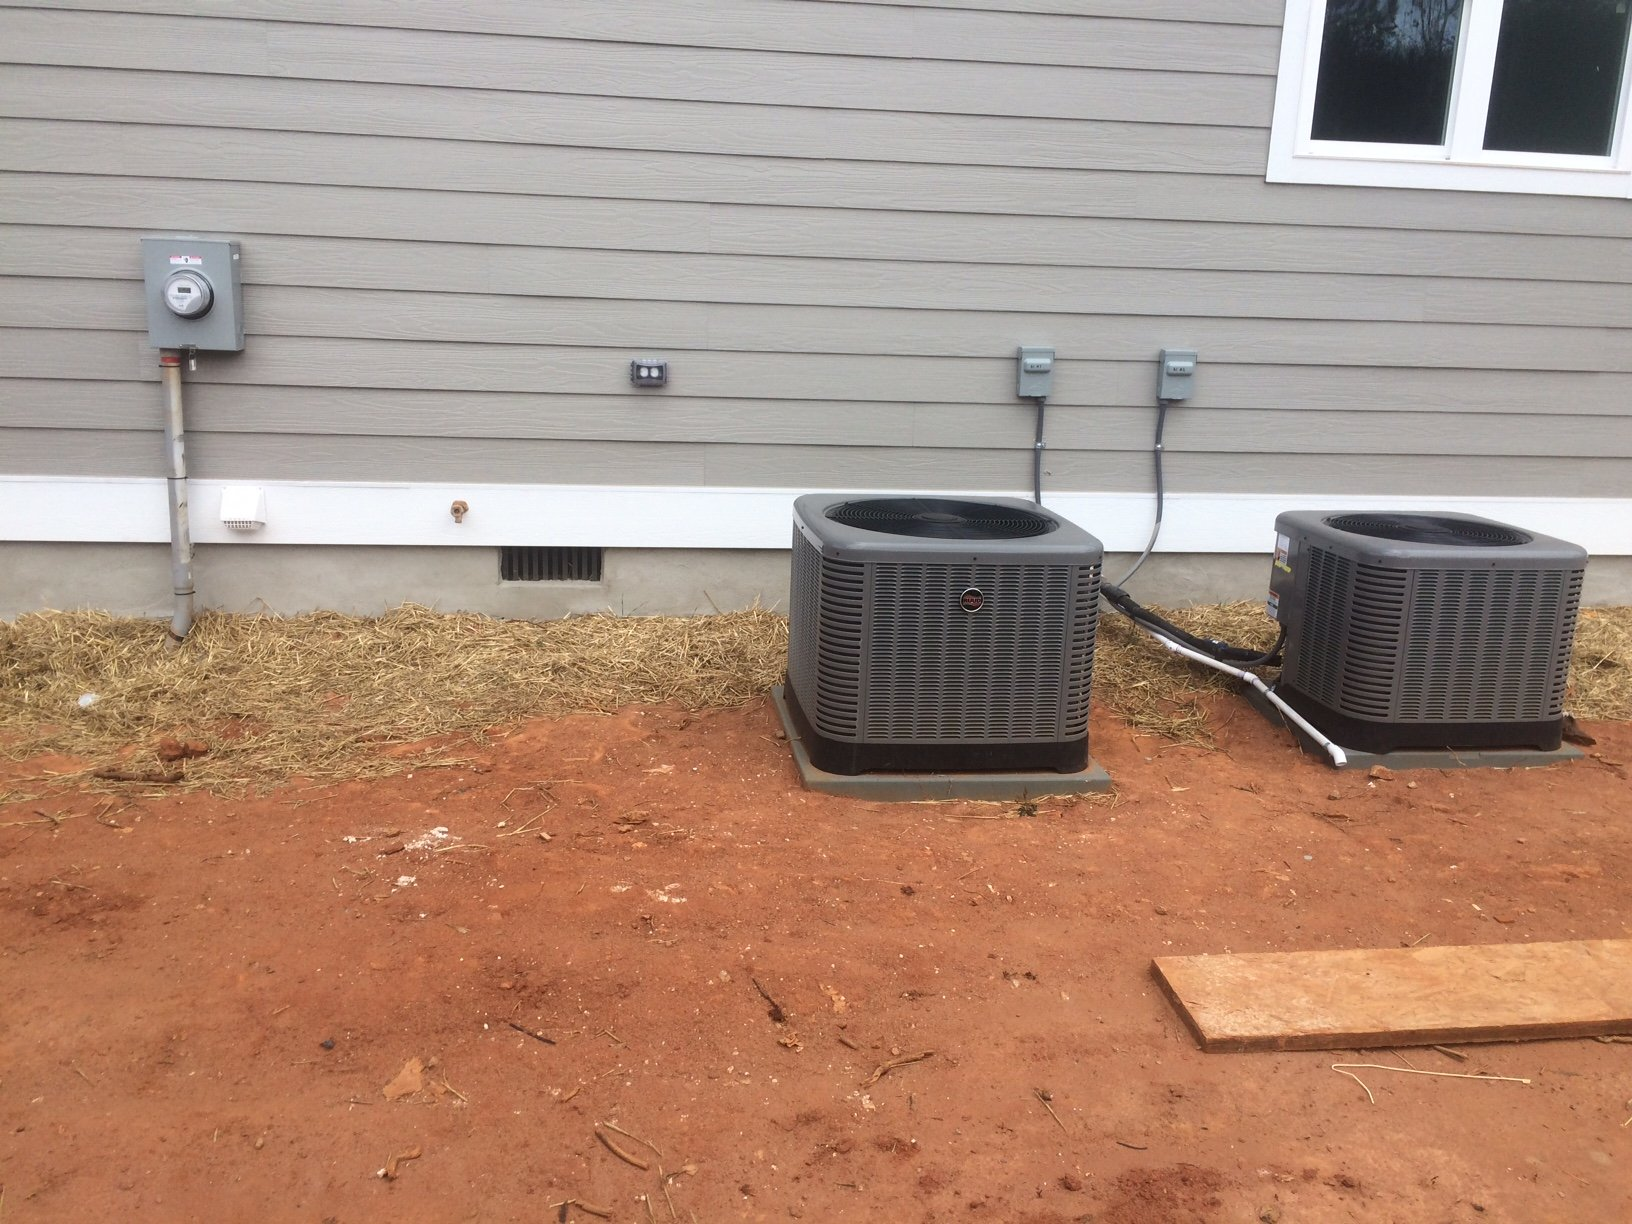 Outdoor unit for air conditioning installation in Concord, NC